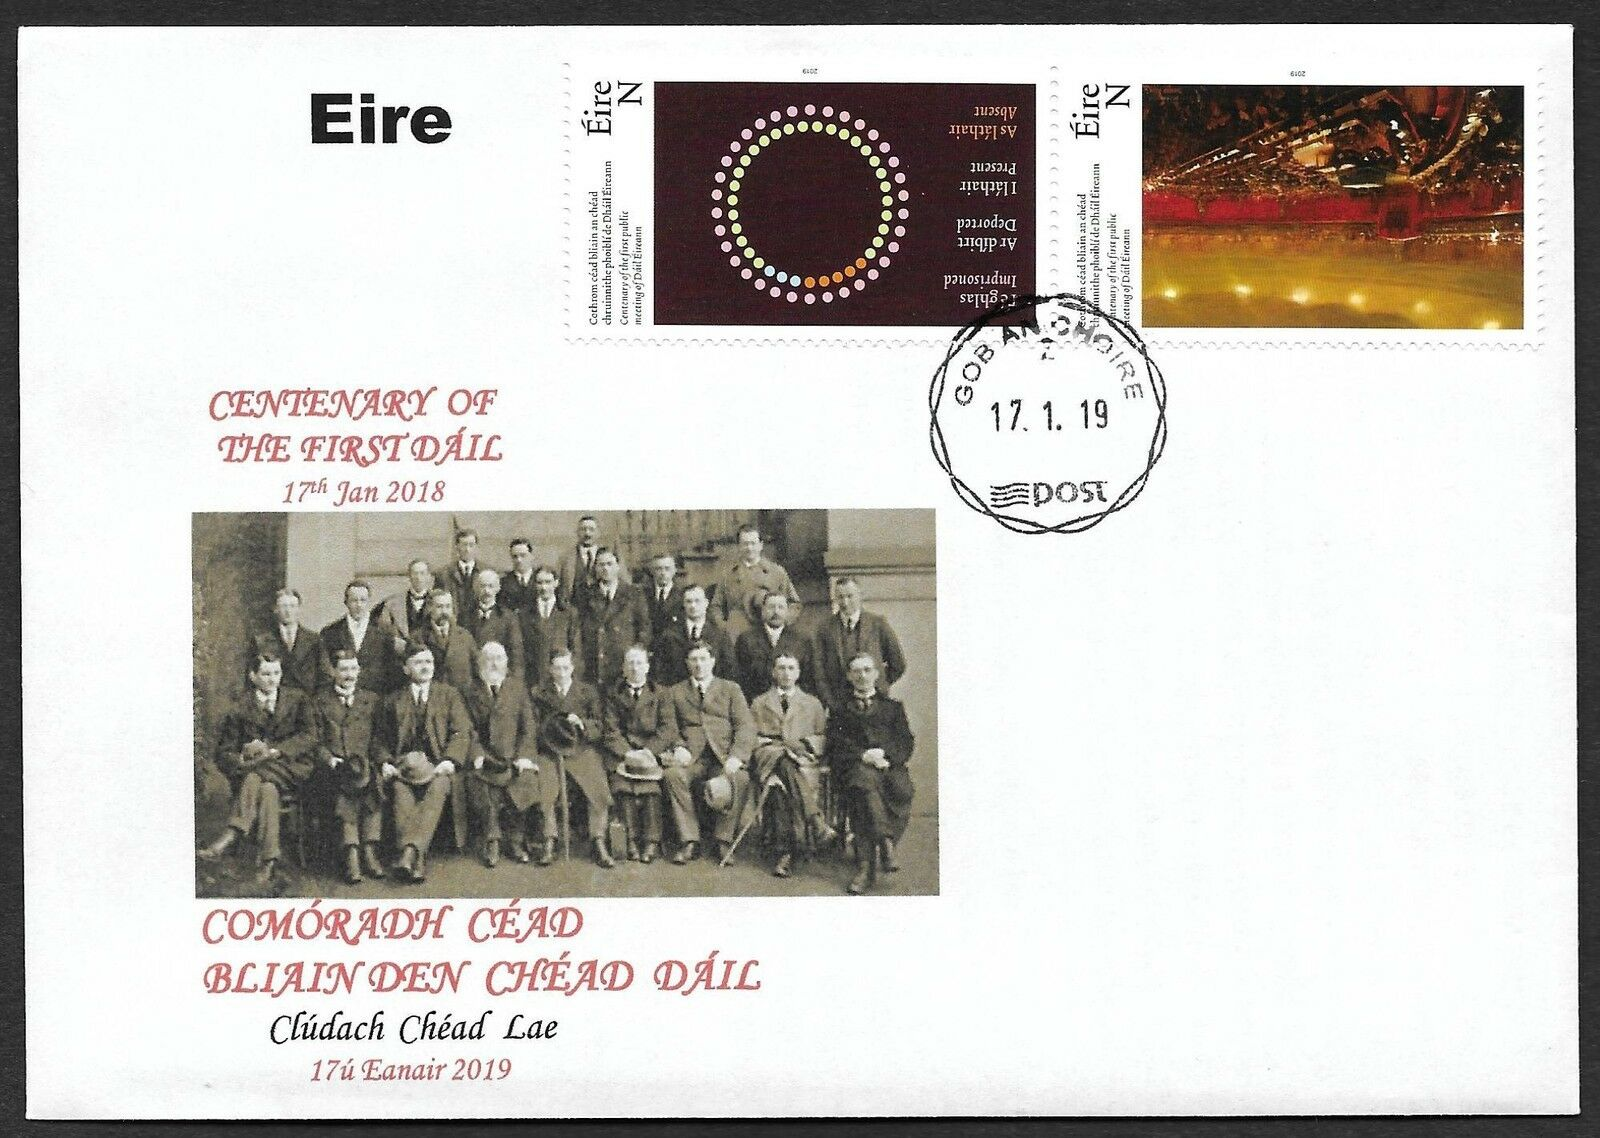 Ireland - 100th Anniversary of the 1st Public Meeting of Dáil Éireann / Lower House of the Irish Parliament (January 17, 2019) unofficial first day cover